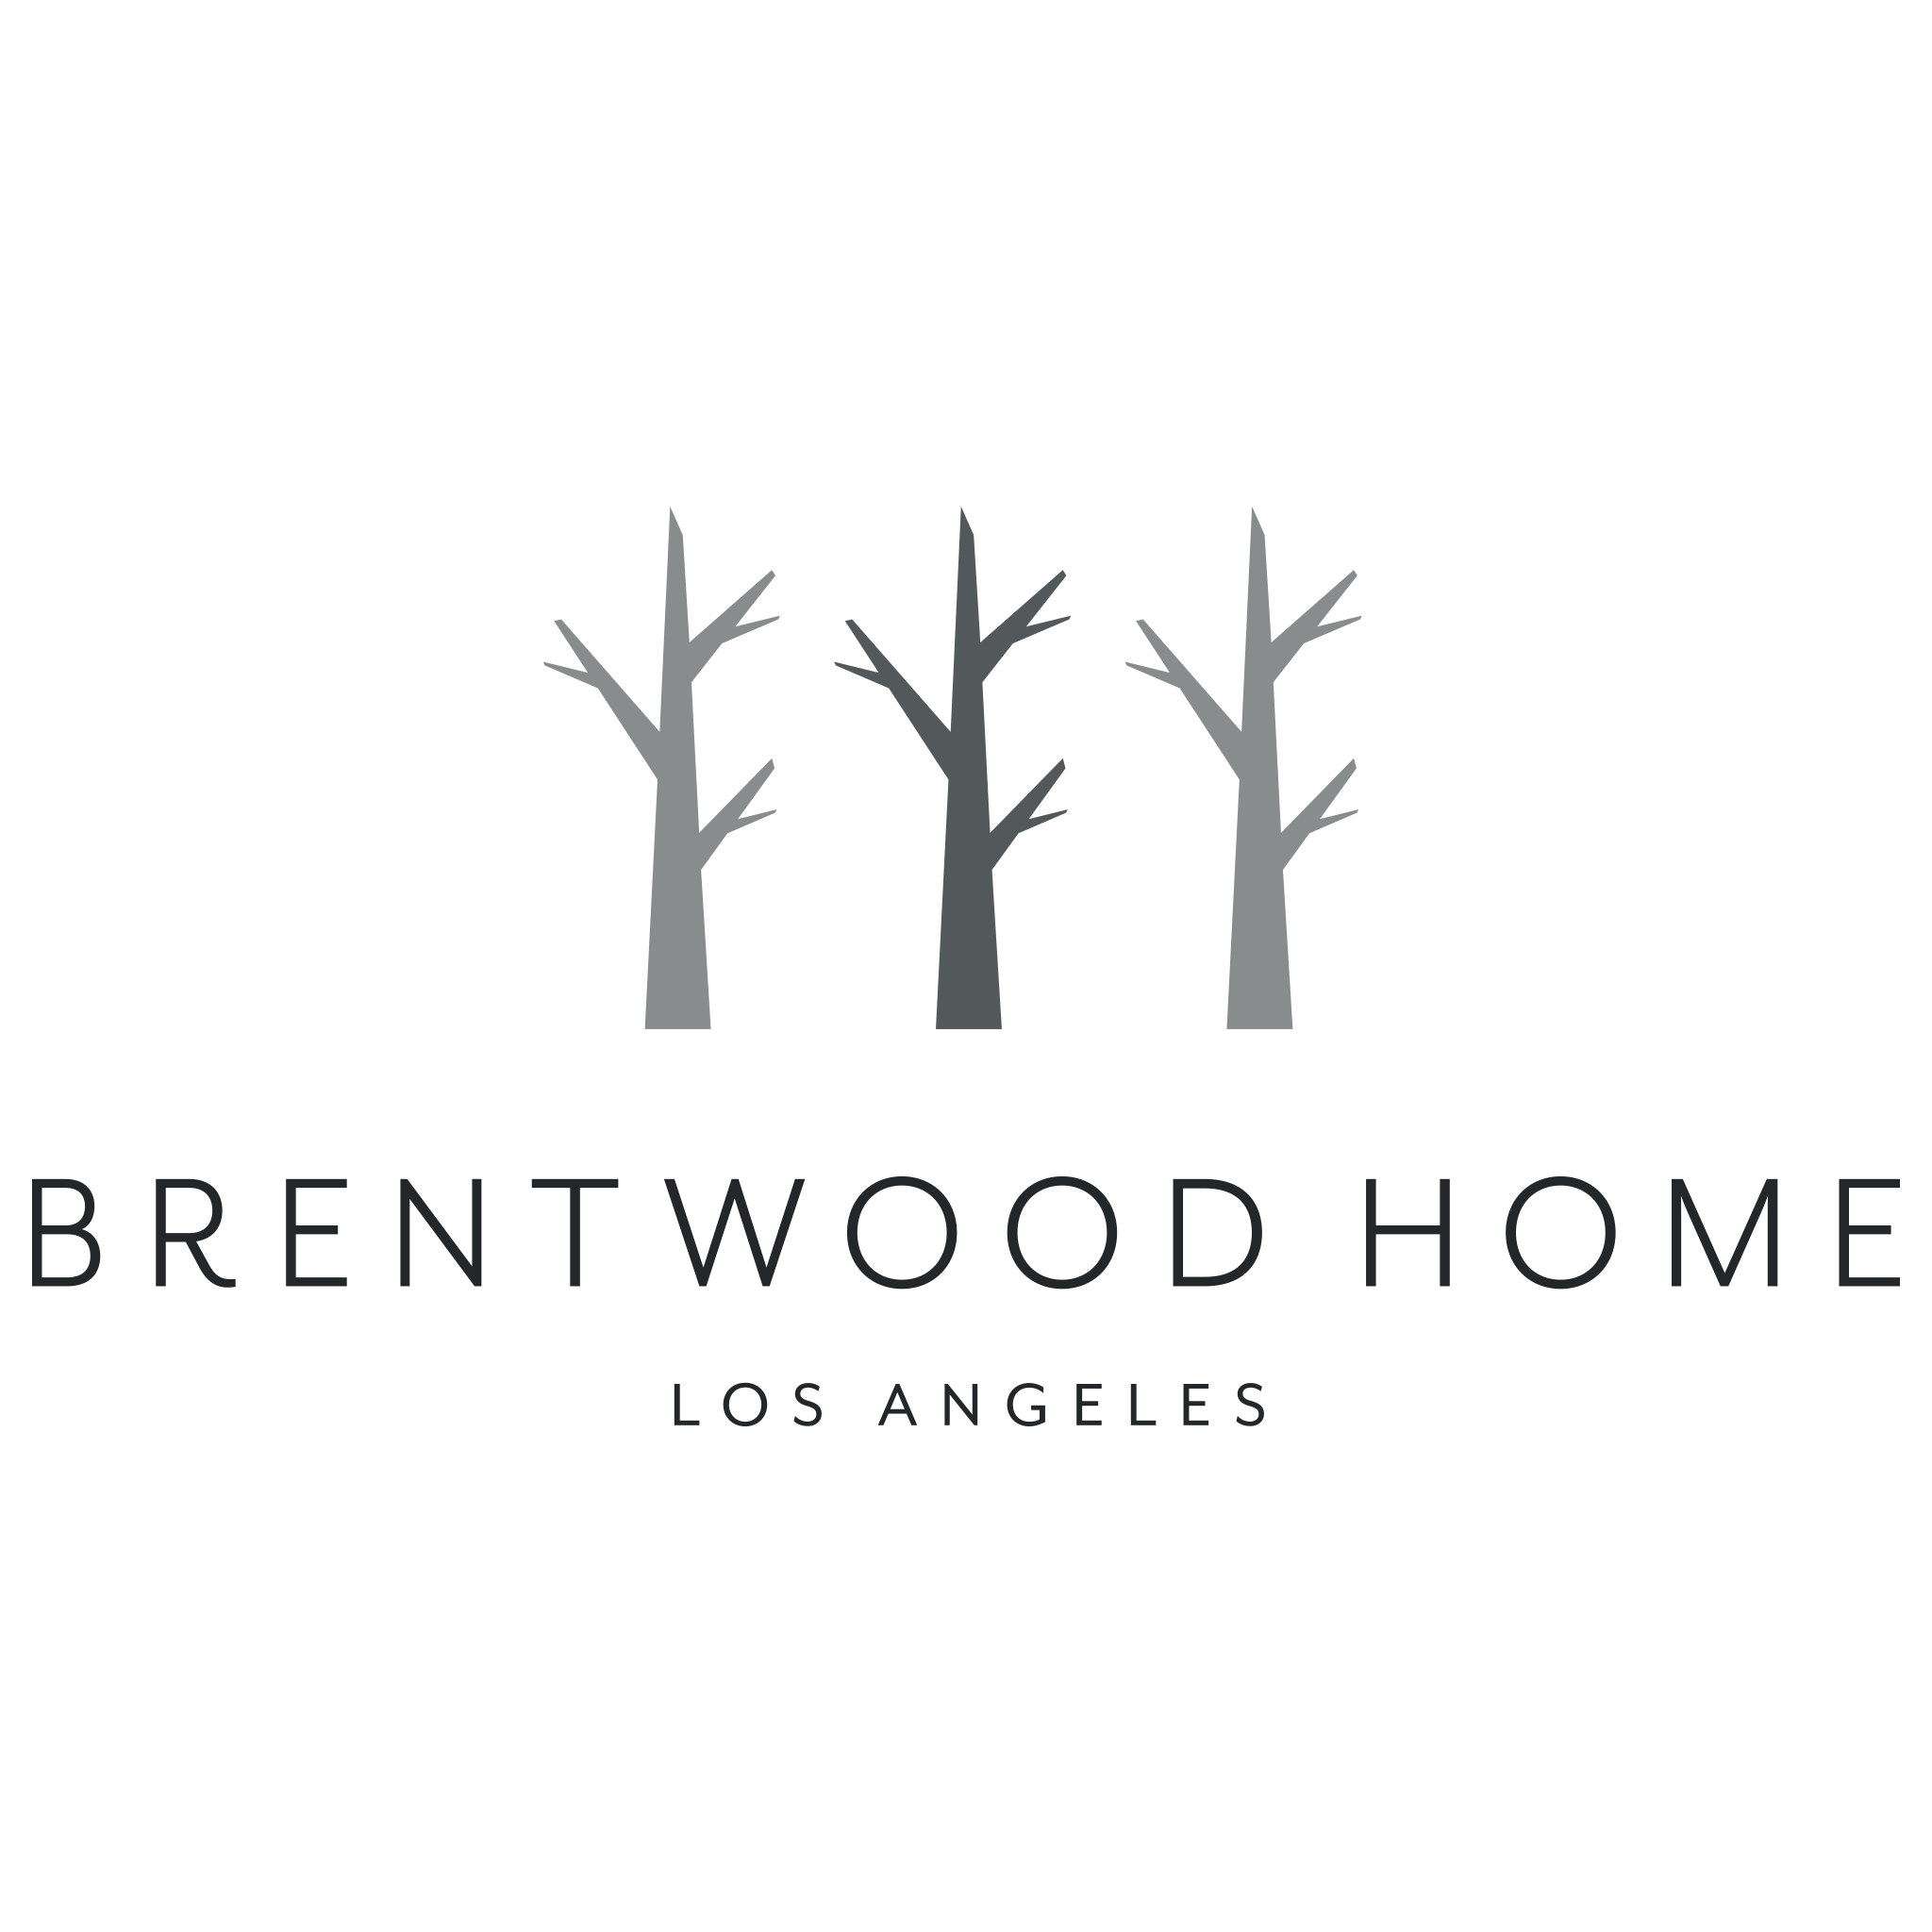 brentwoodhome-logo-2048.png